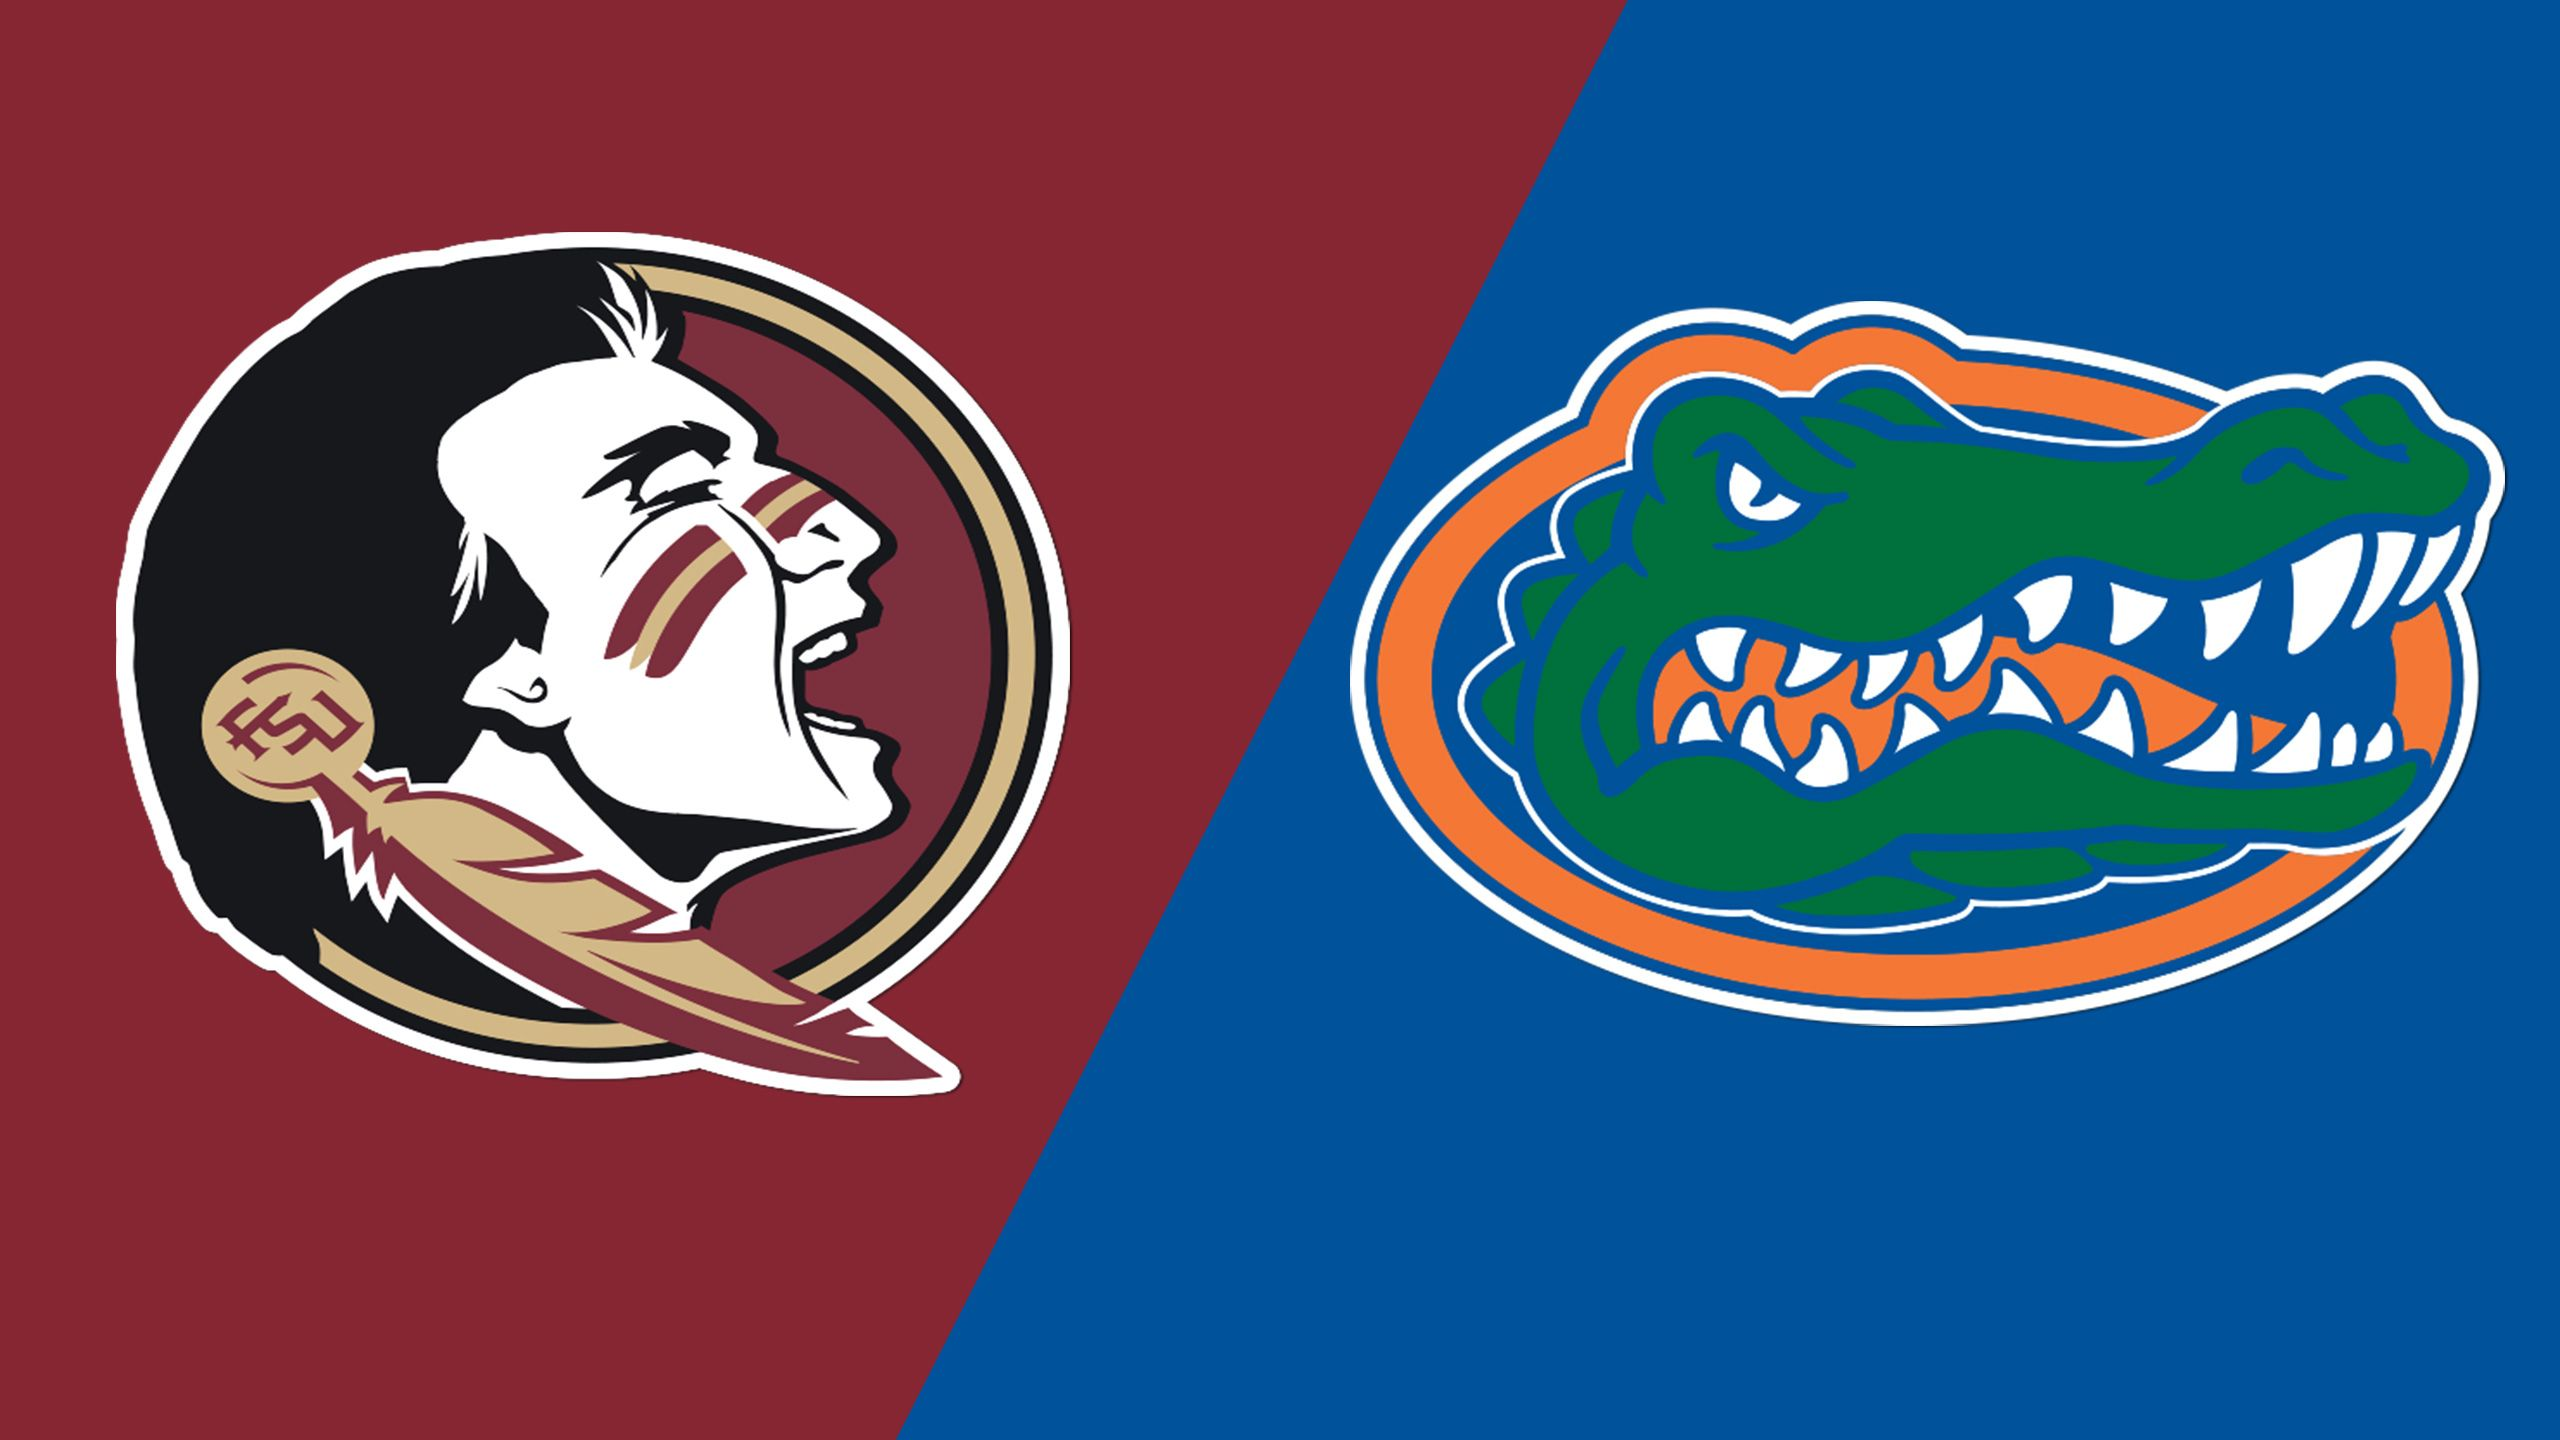 #6 Florida State vs. #5 Florida (Softball)